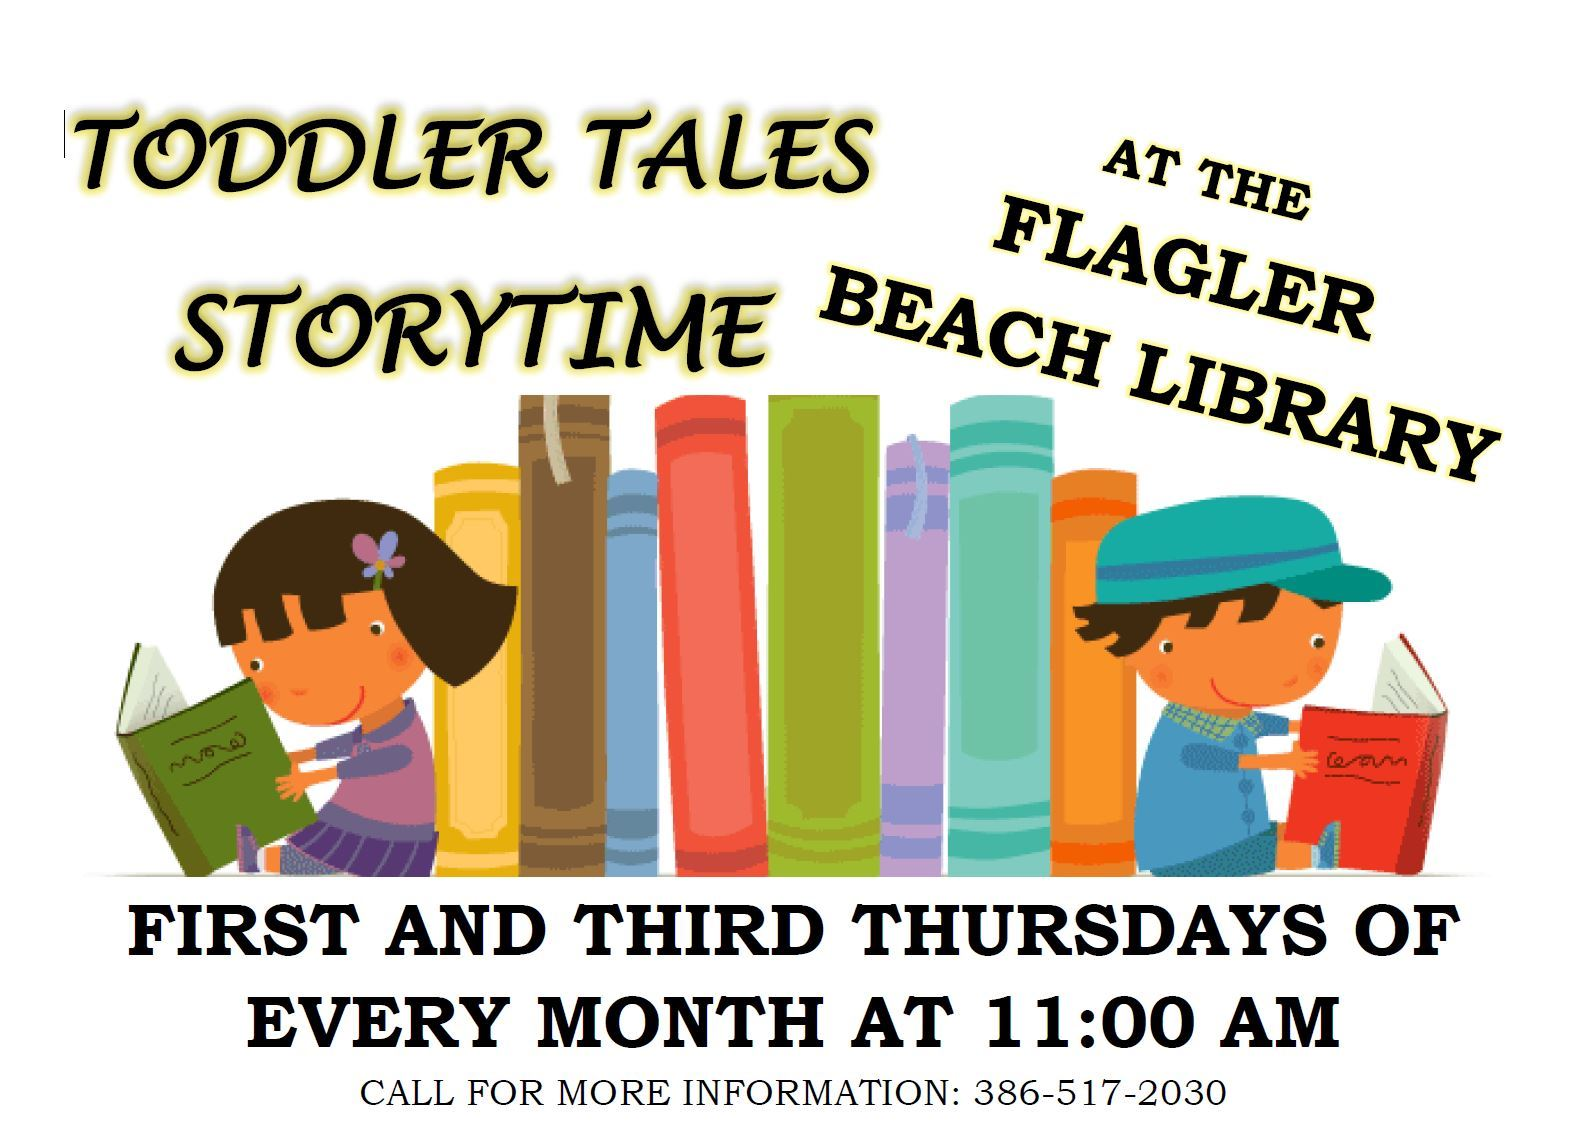 Toddler Tales Flyer First and Third Thursday every month at 11 a.m.